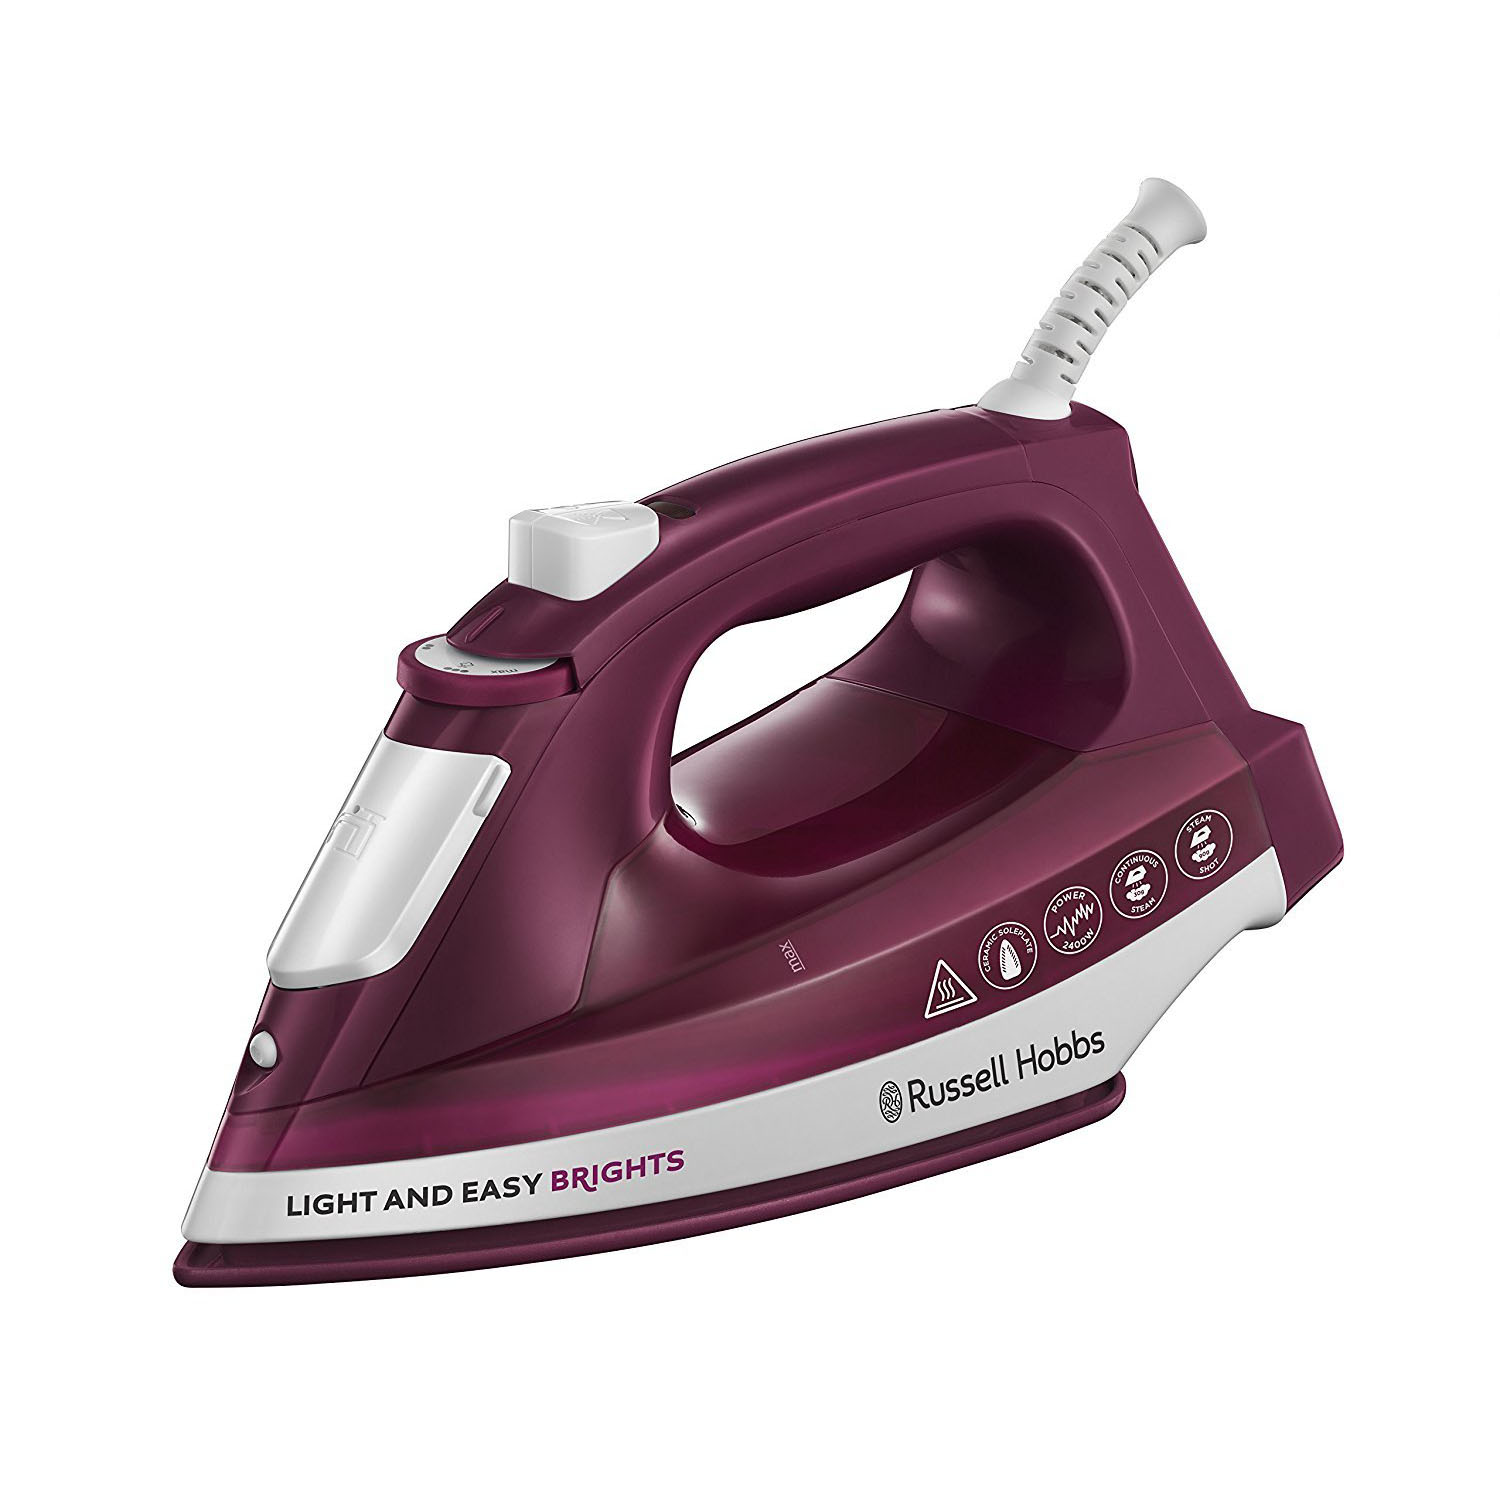 Russell Hobbs 24820 Light and Easy Brights Ceramic Iron - Mulberry